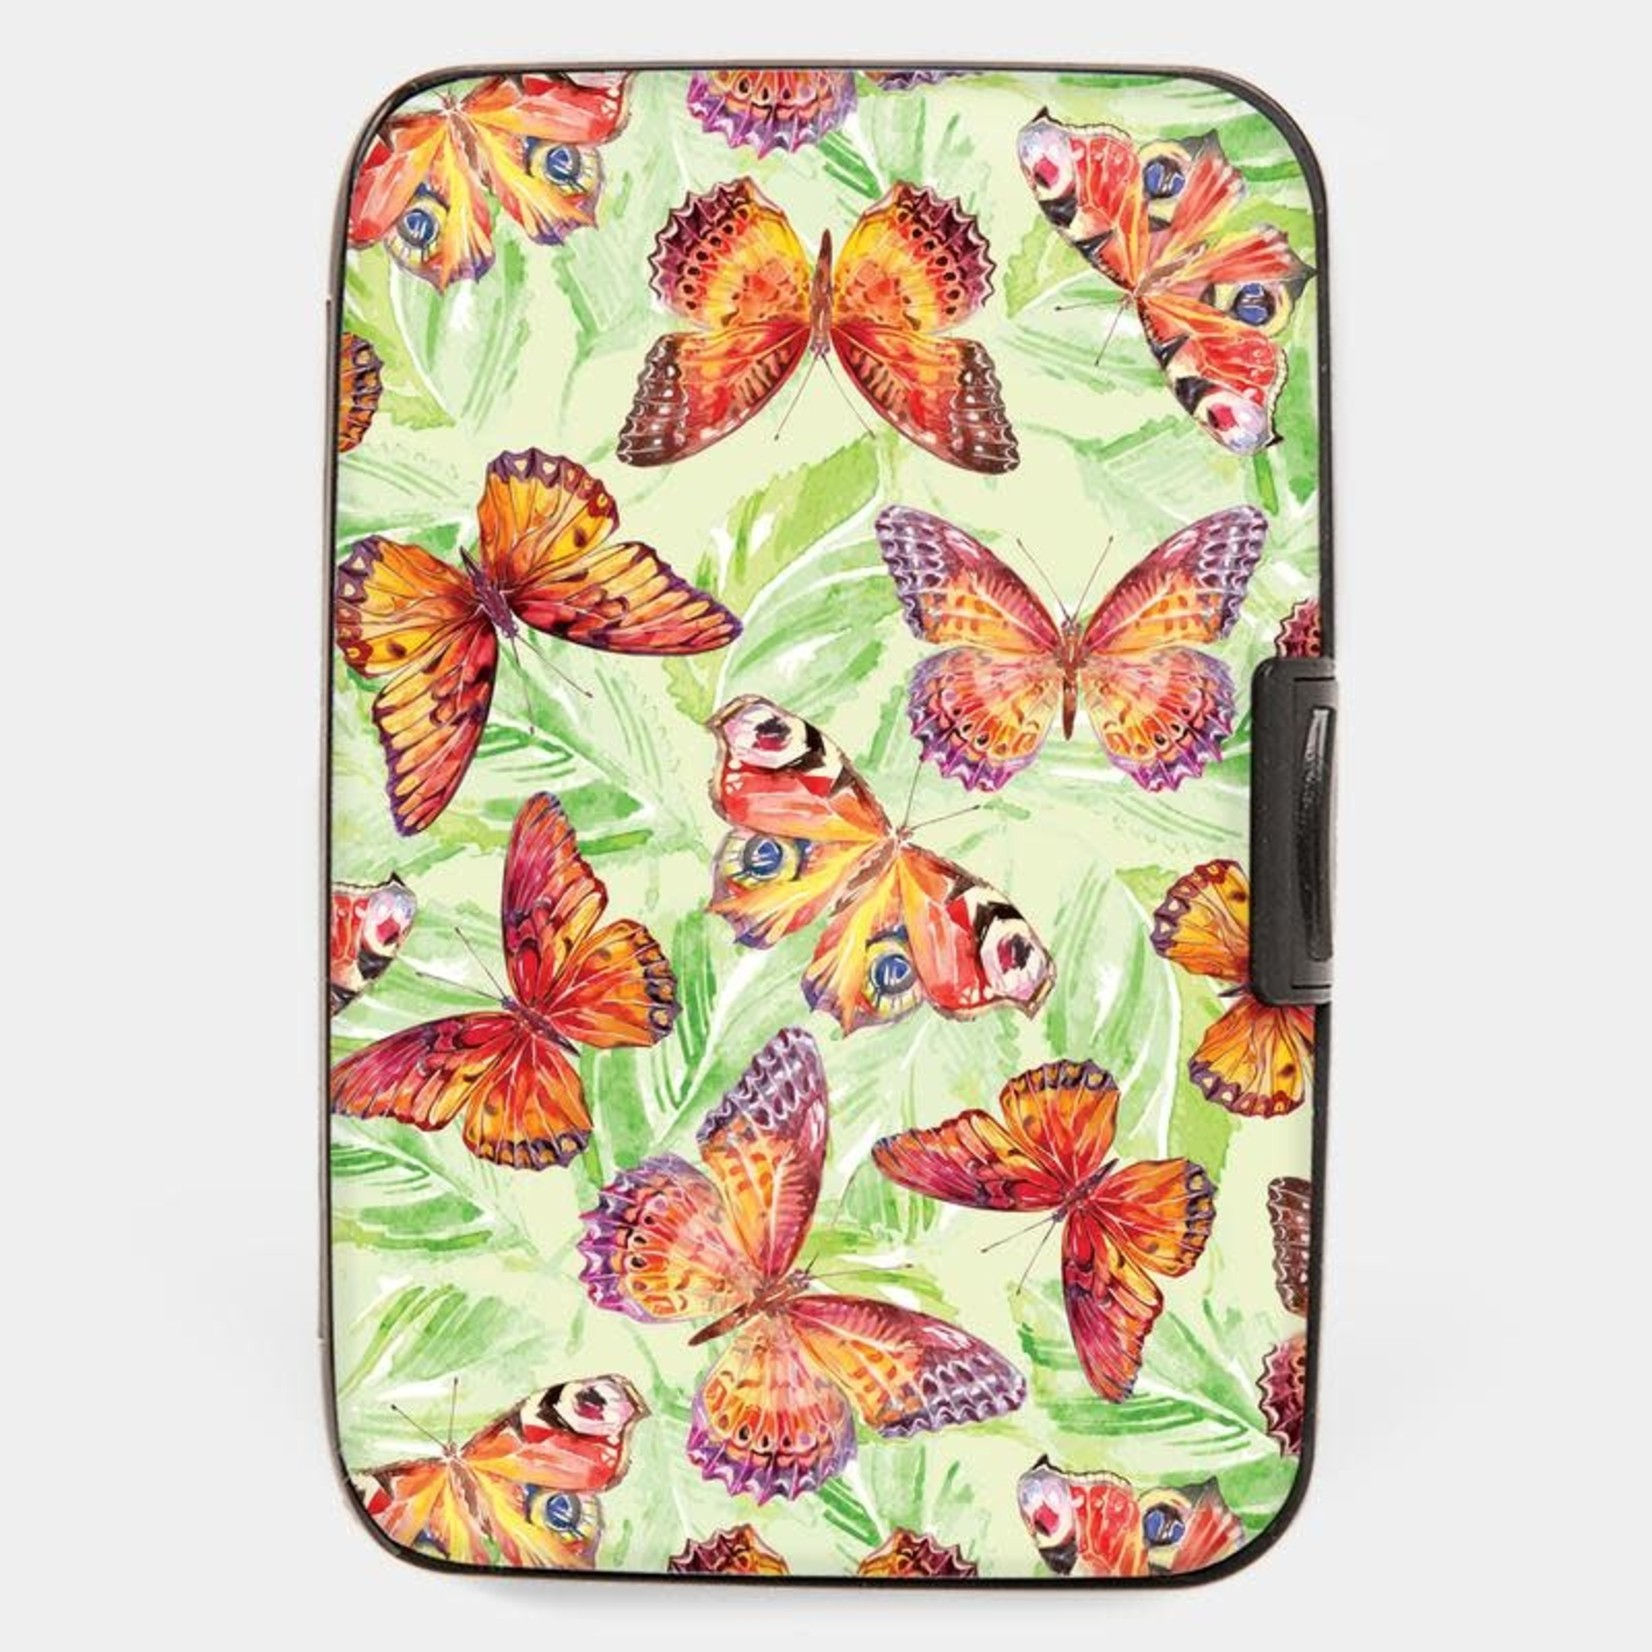 Monarque Armored Wallet - Butterflies Orange With Green Backdrop